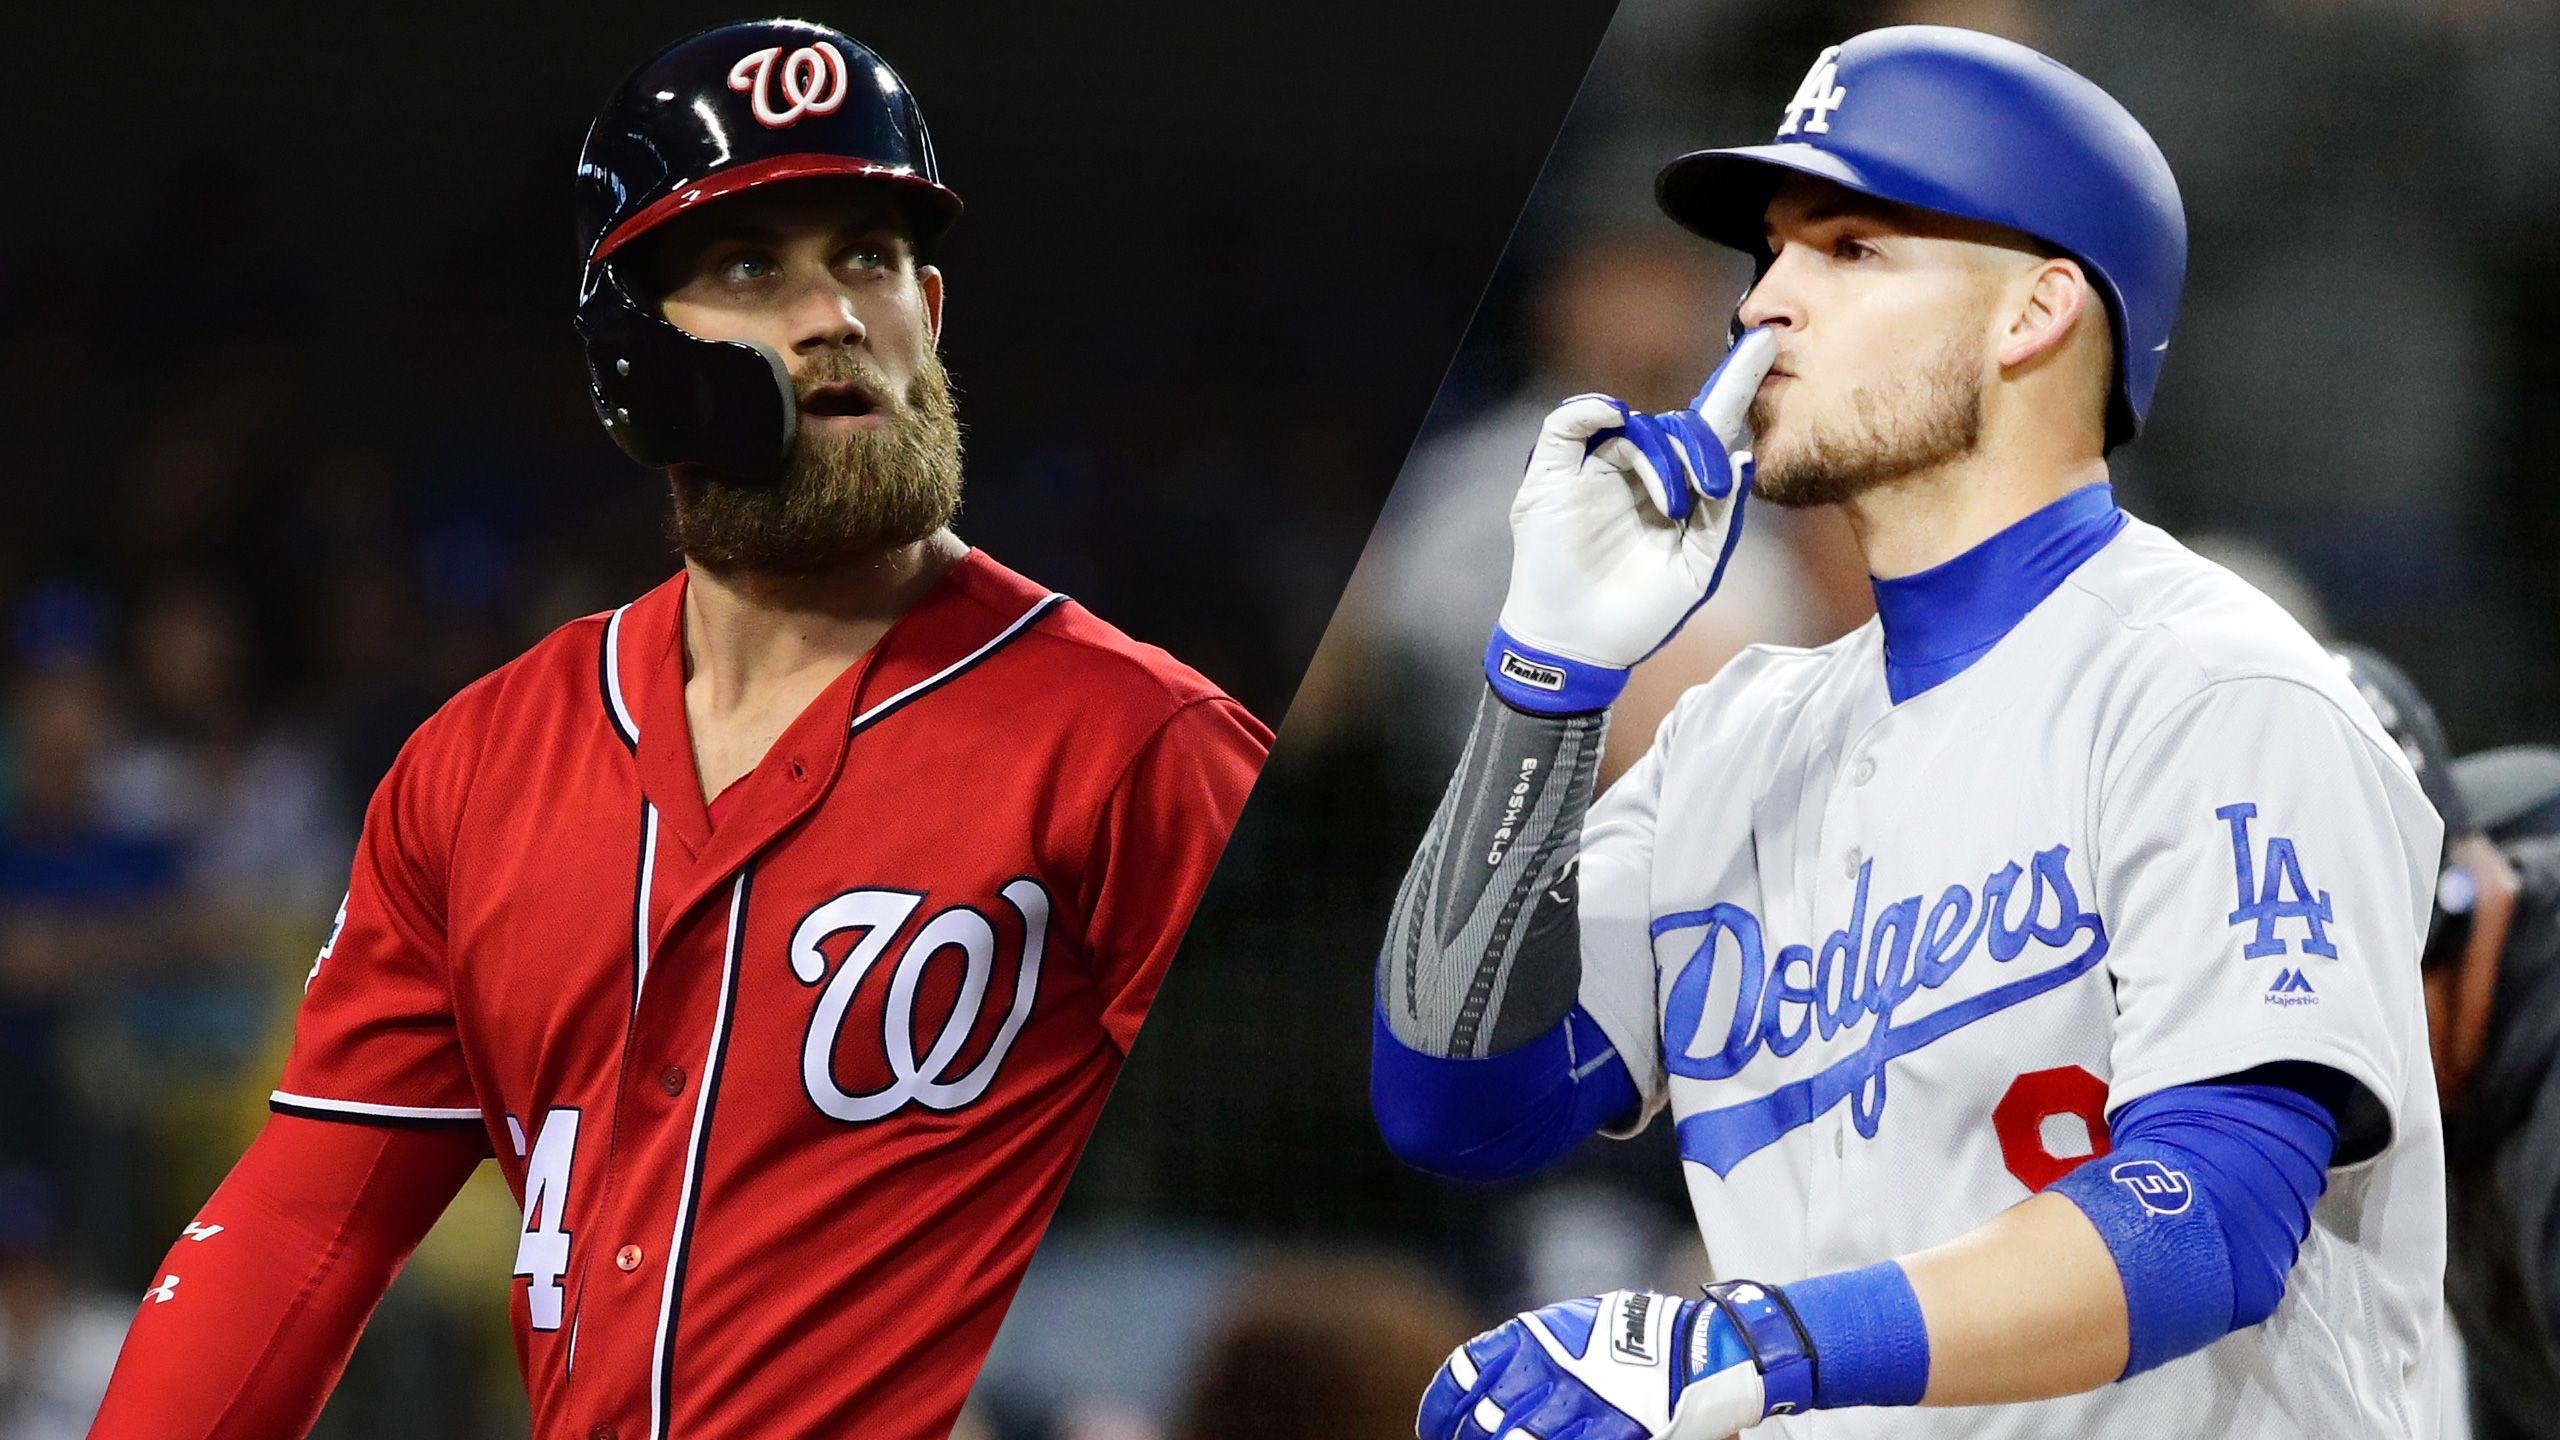 Washington Nationals vs. Los Angeles Dodgers (re-air)